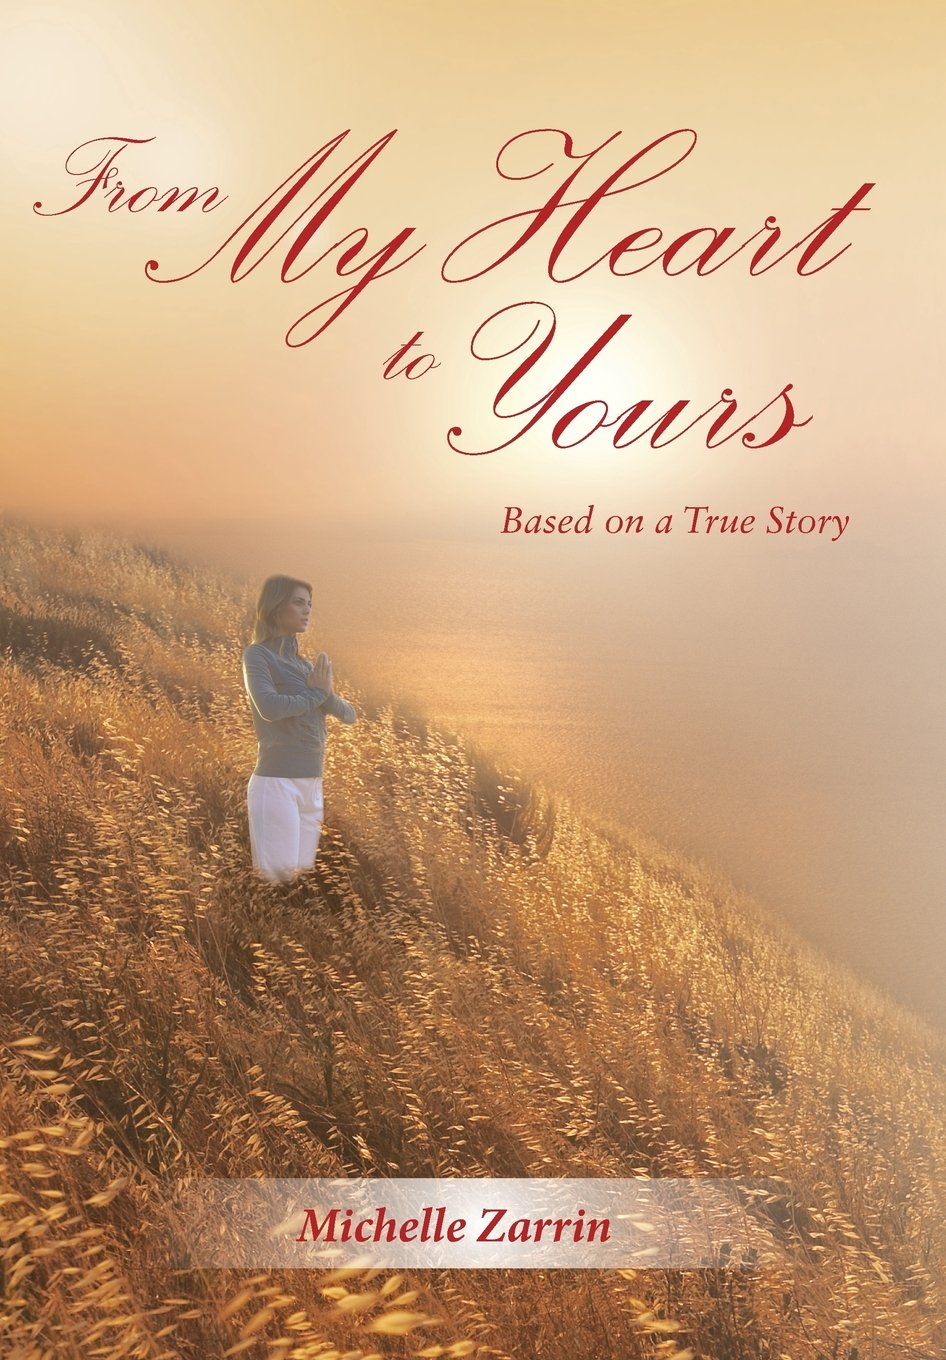 from my heart to yours based on a true story michelle zarrin